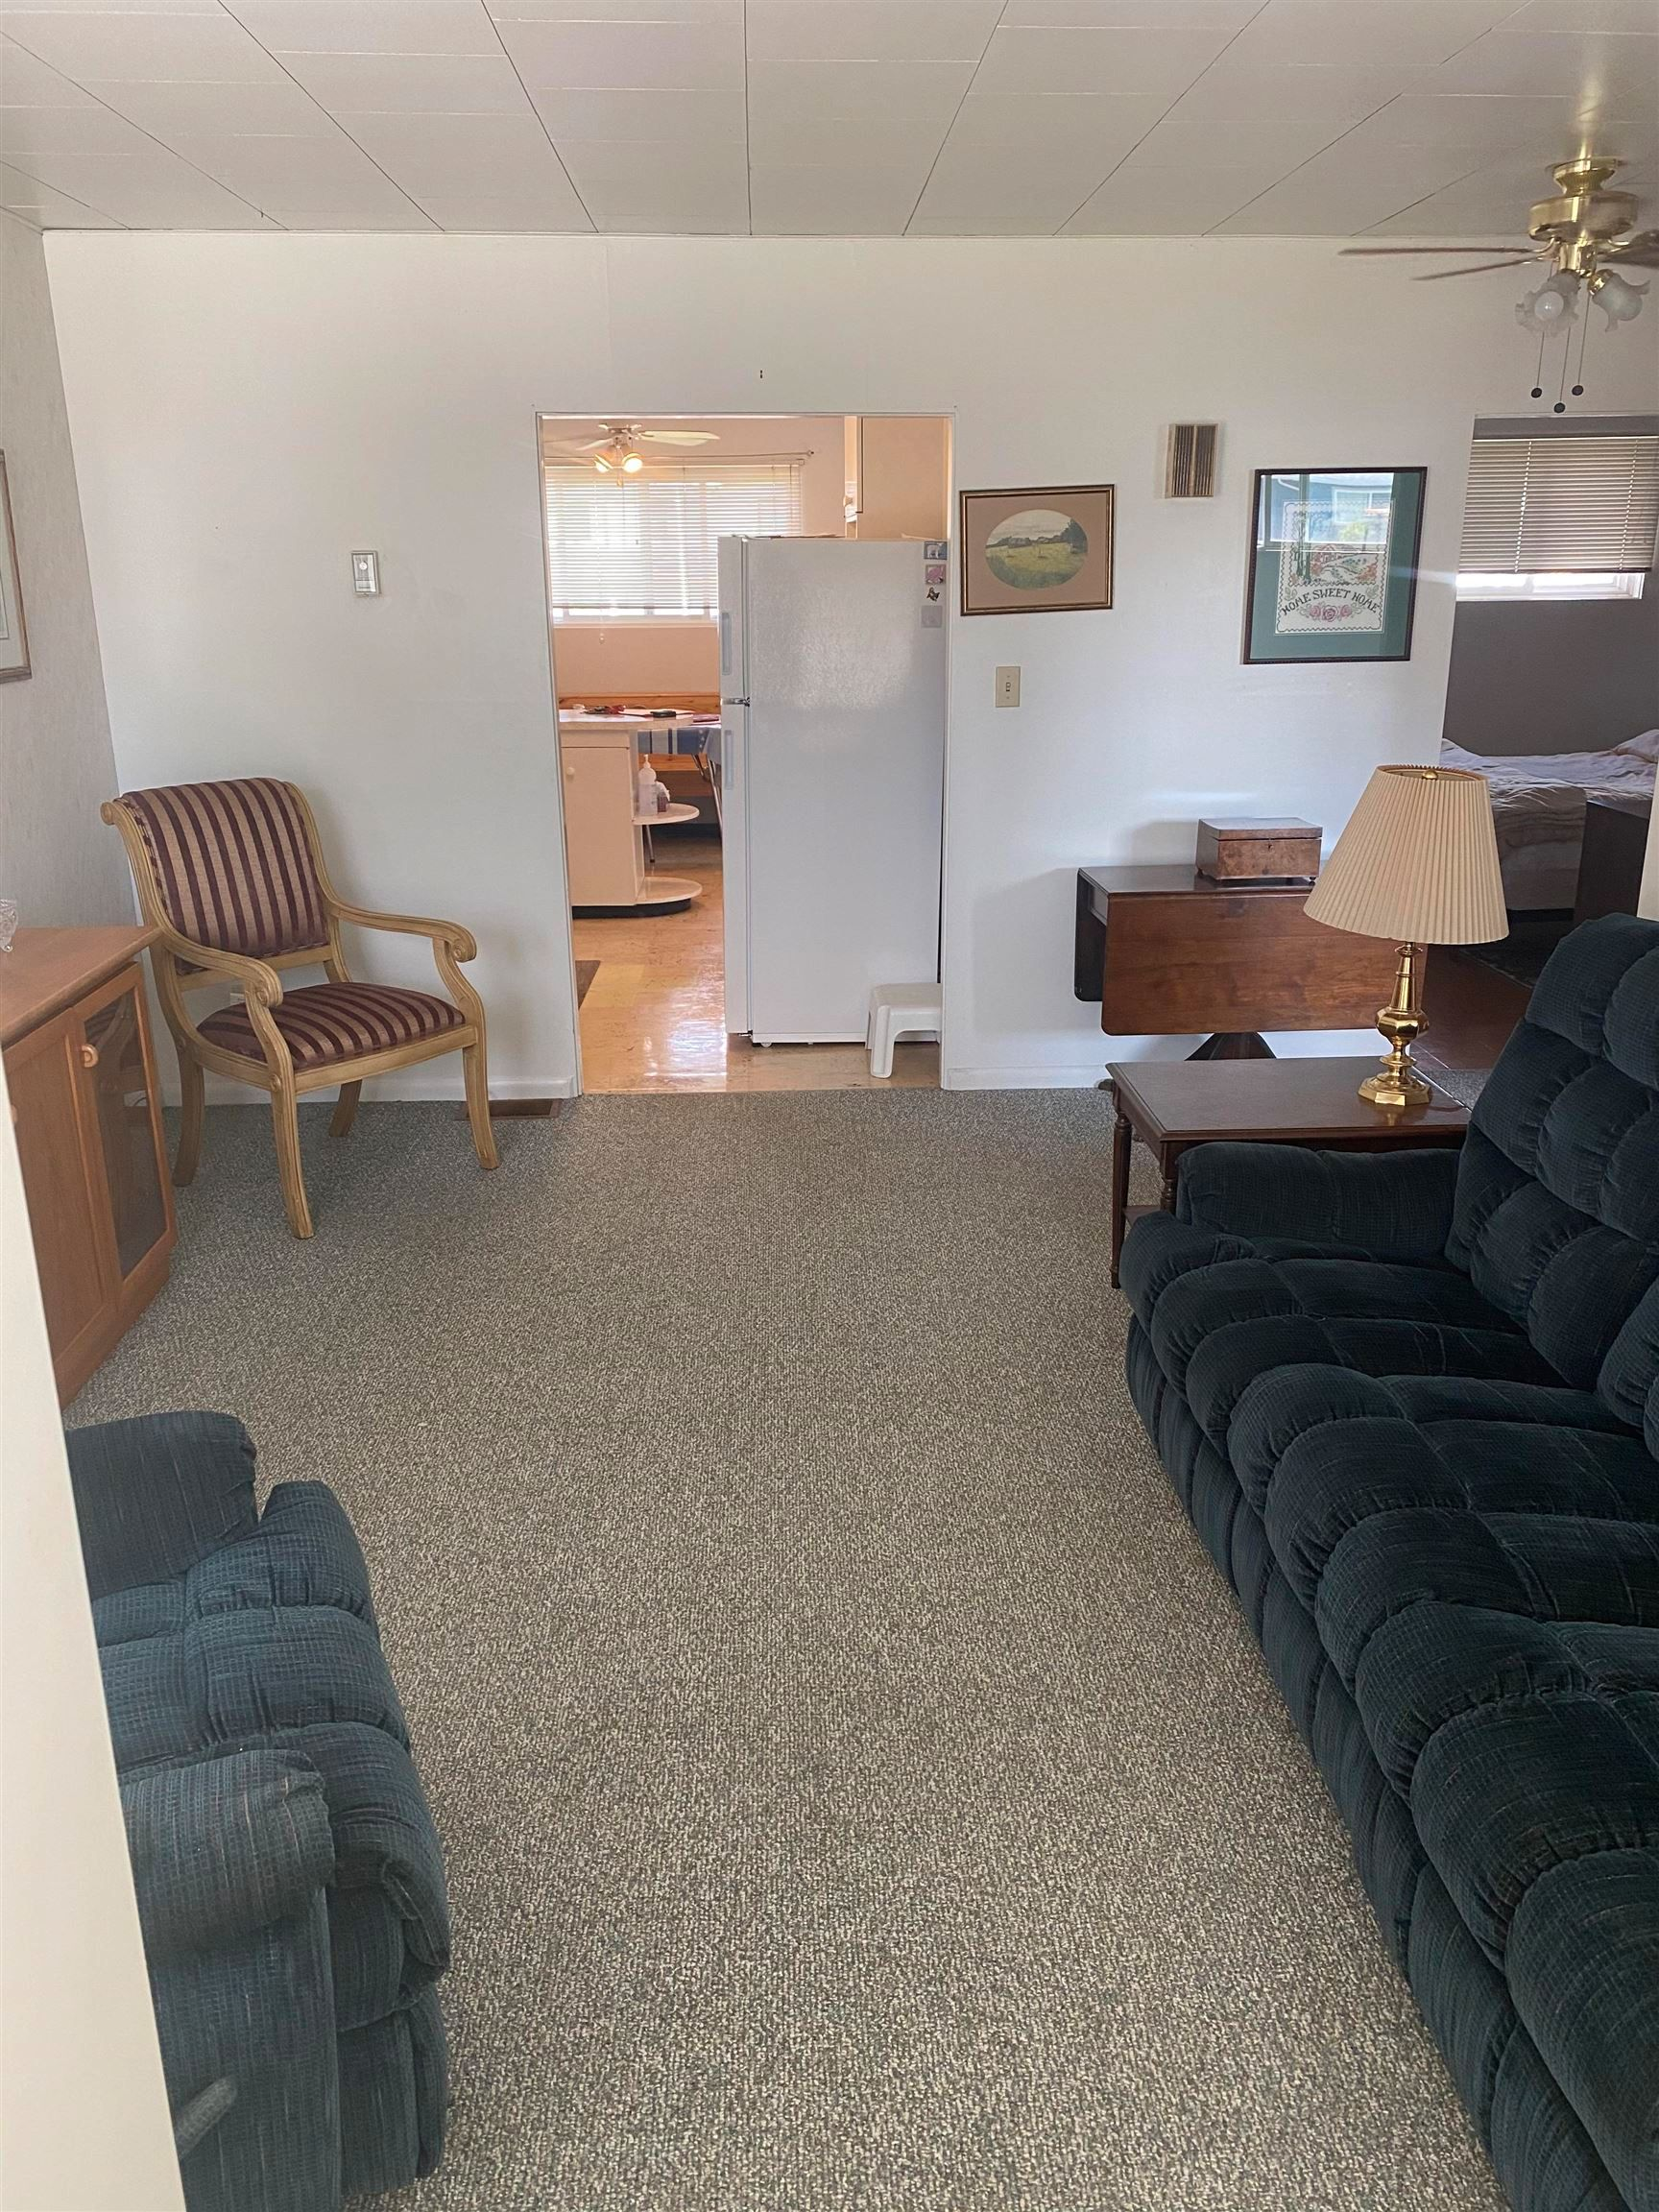 Photo 14: Photos: 346 - 352 CARNEY Street in Prince George: Central Duplex for sale (PG City Central (Zone 72))  : MLS®# R2609479